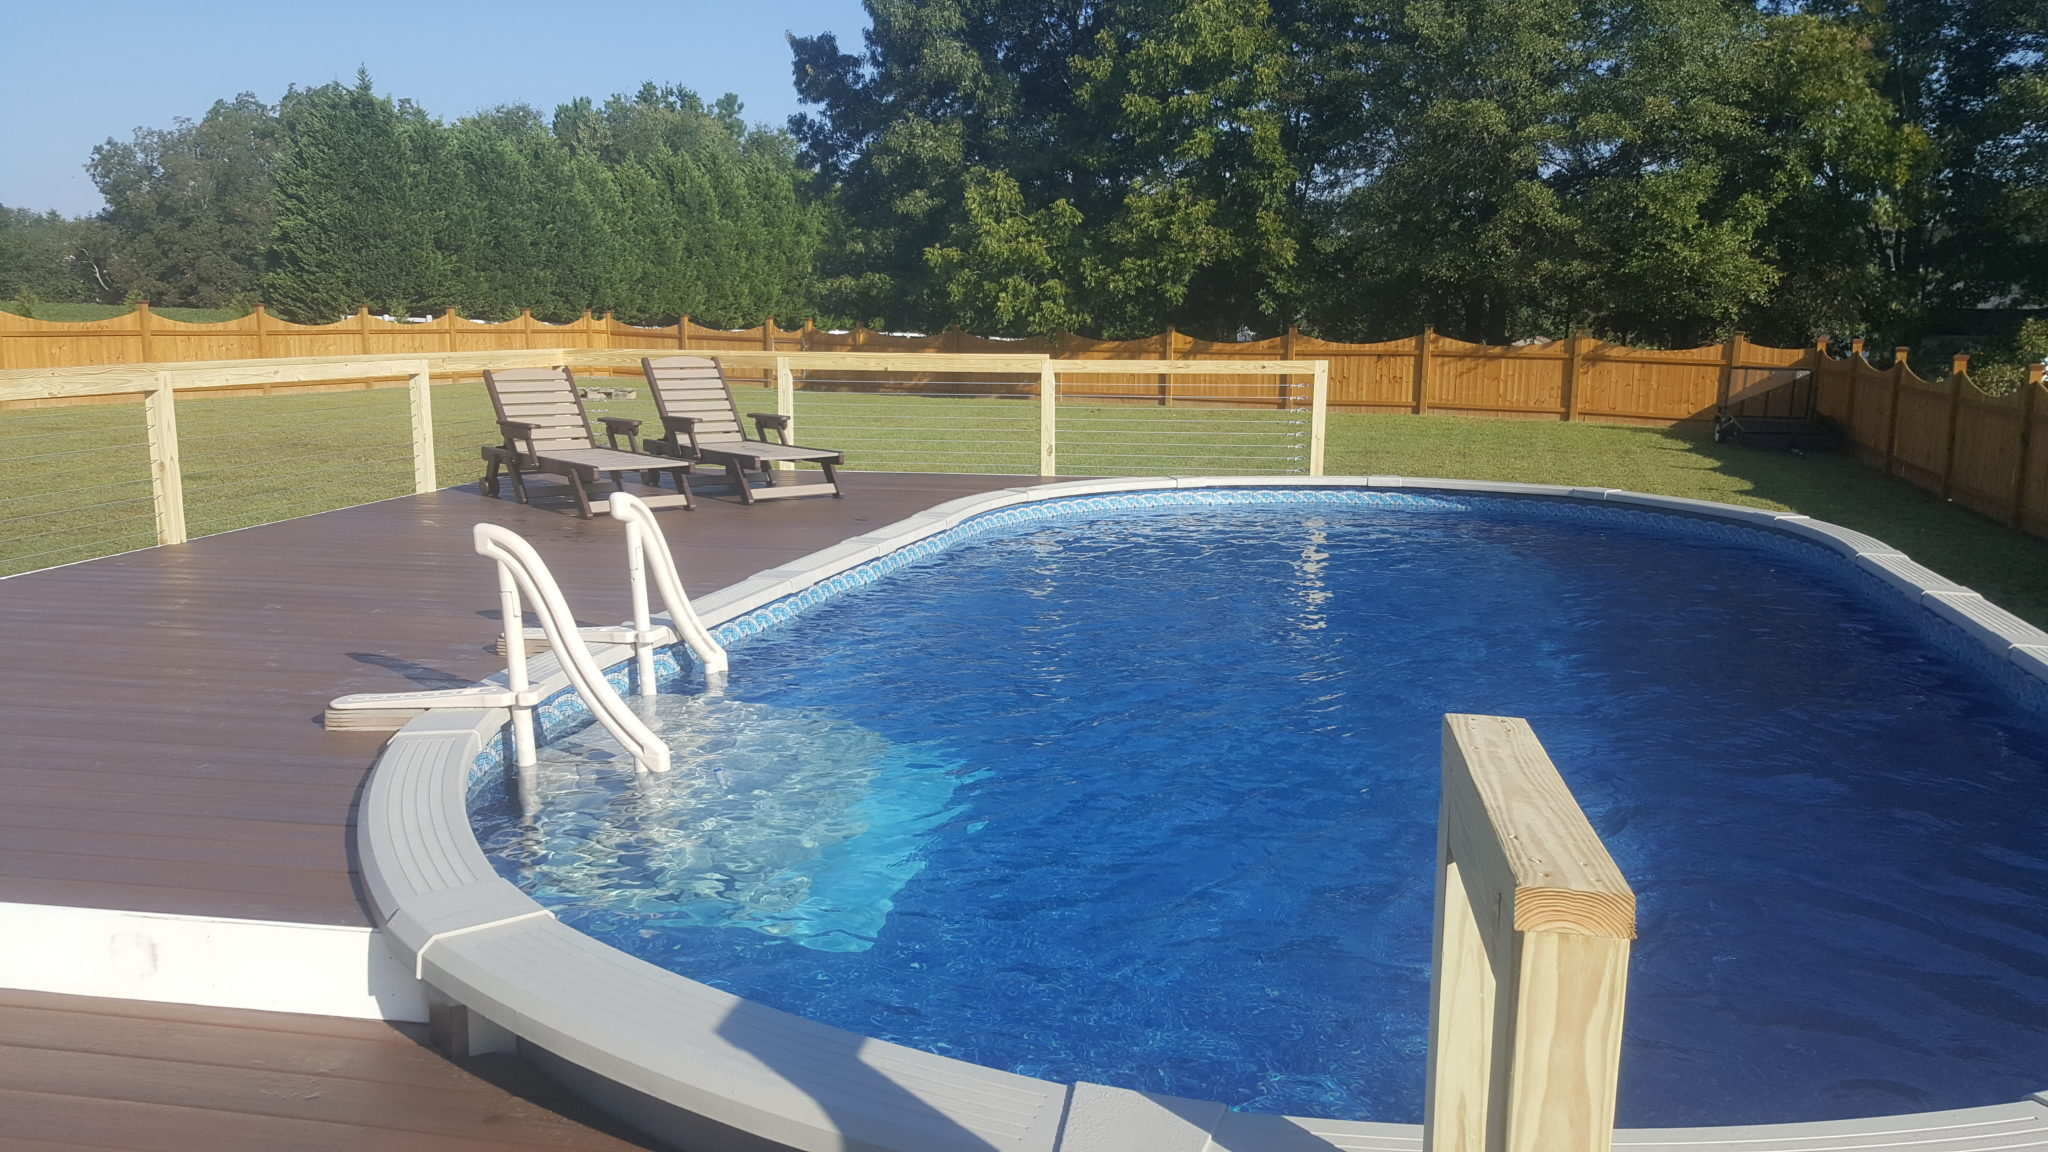 Things To Consider Before Purchasing Pool Equipment